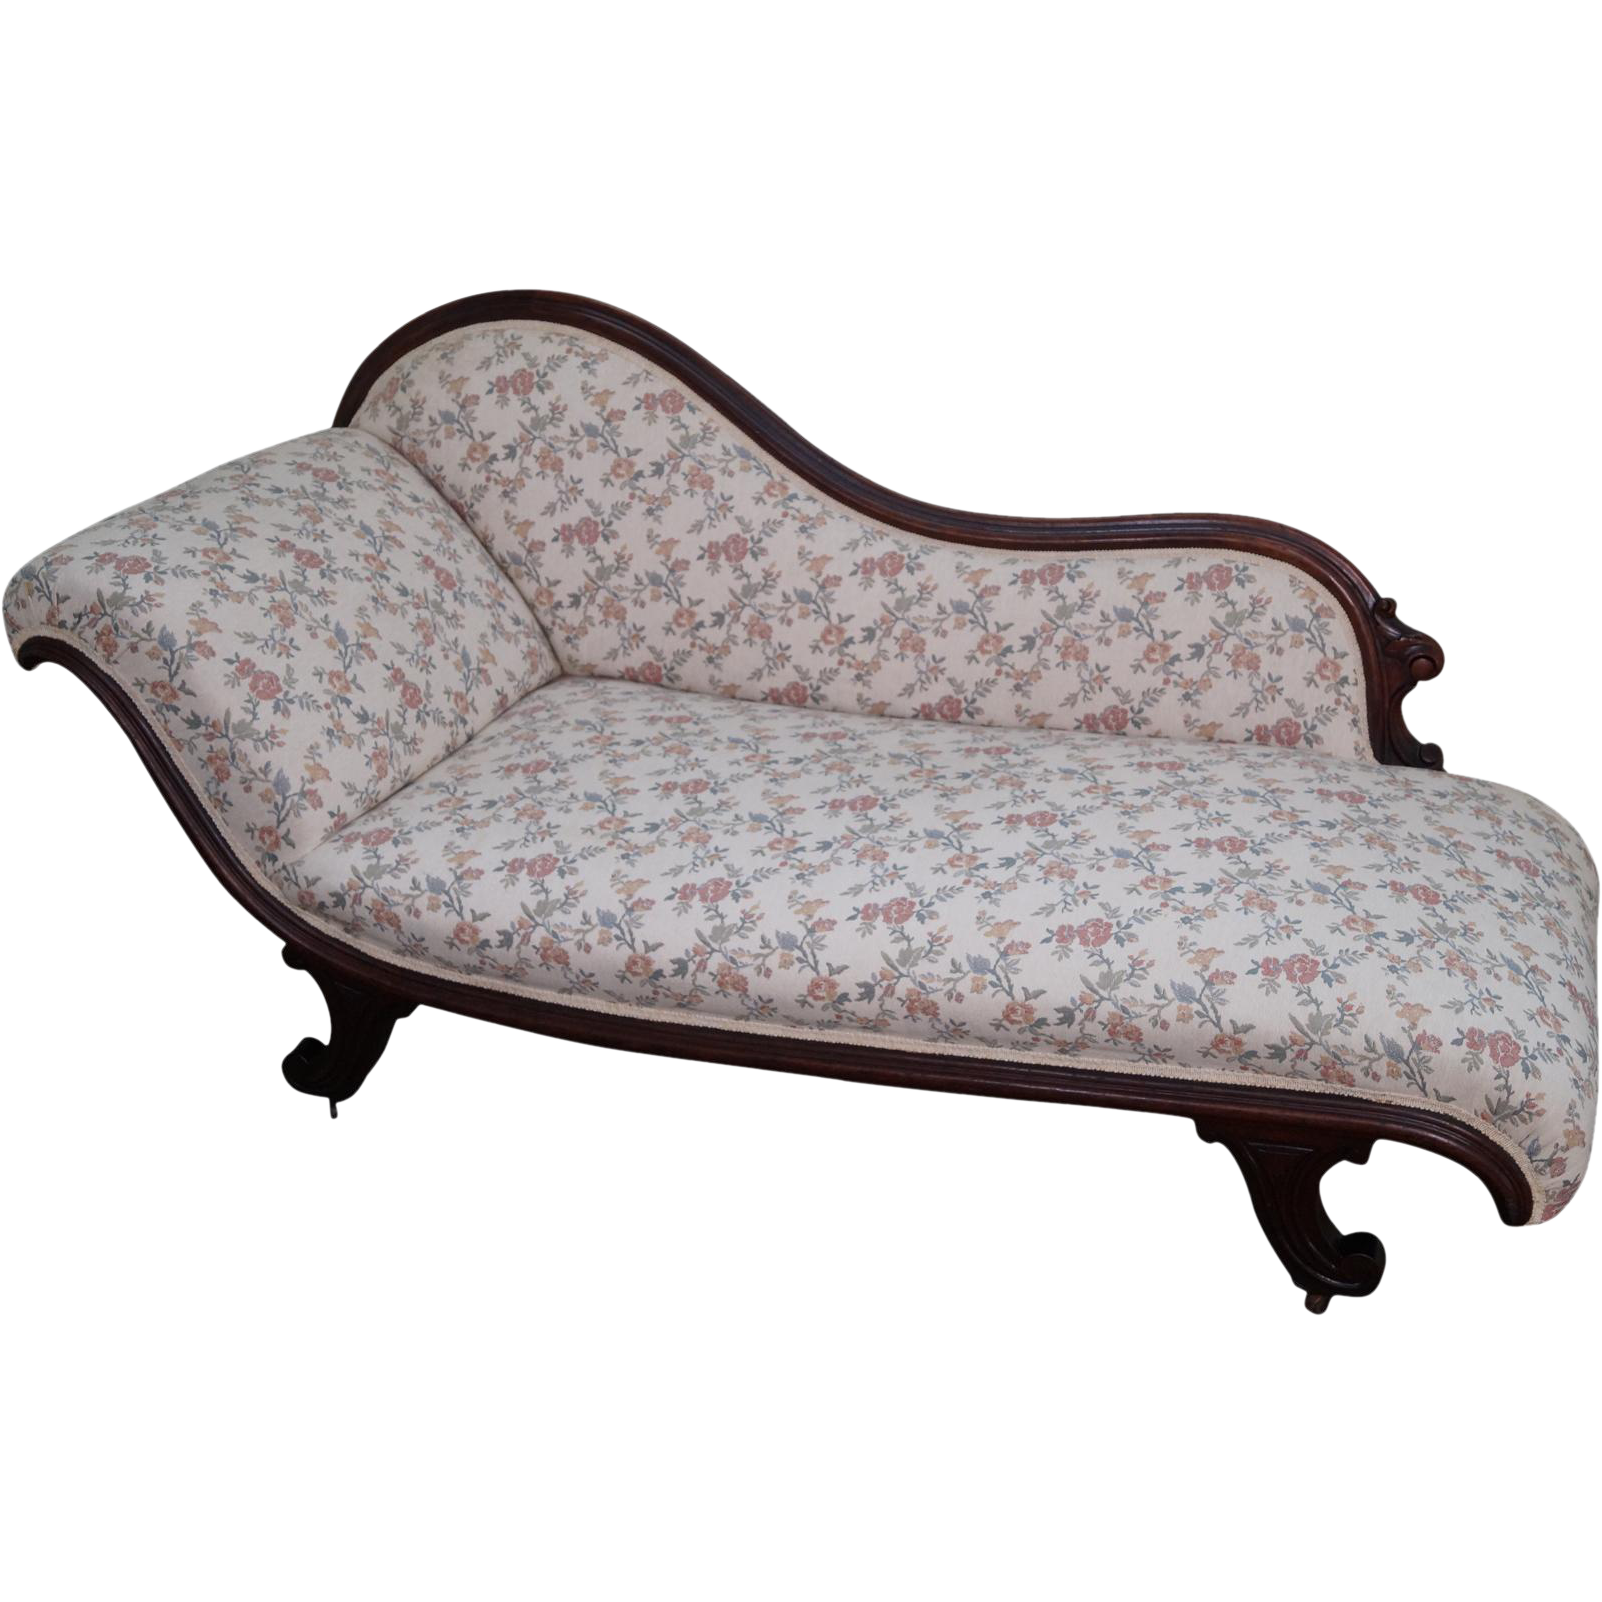 Antique 19th century walnut frame recamier chaise lounge for Antique chaise lounge